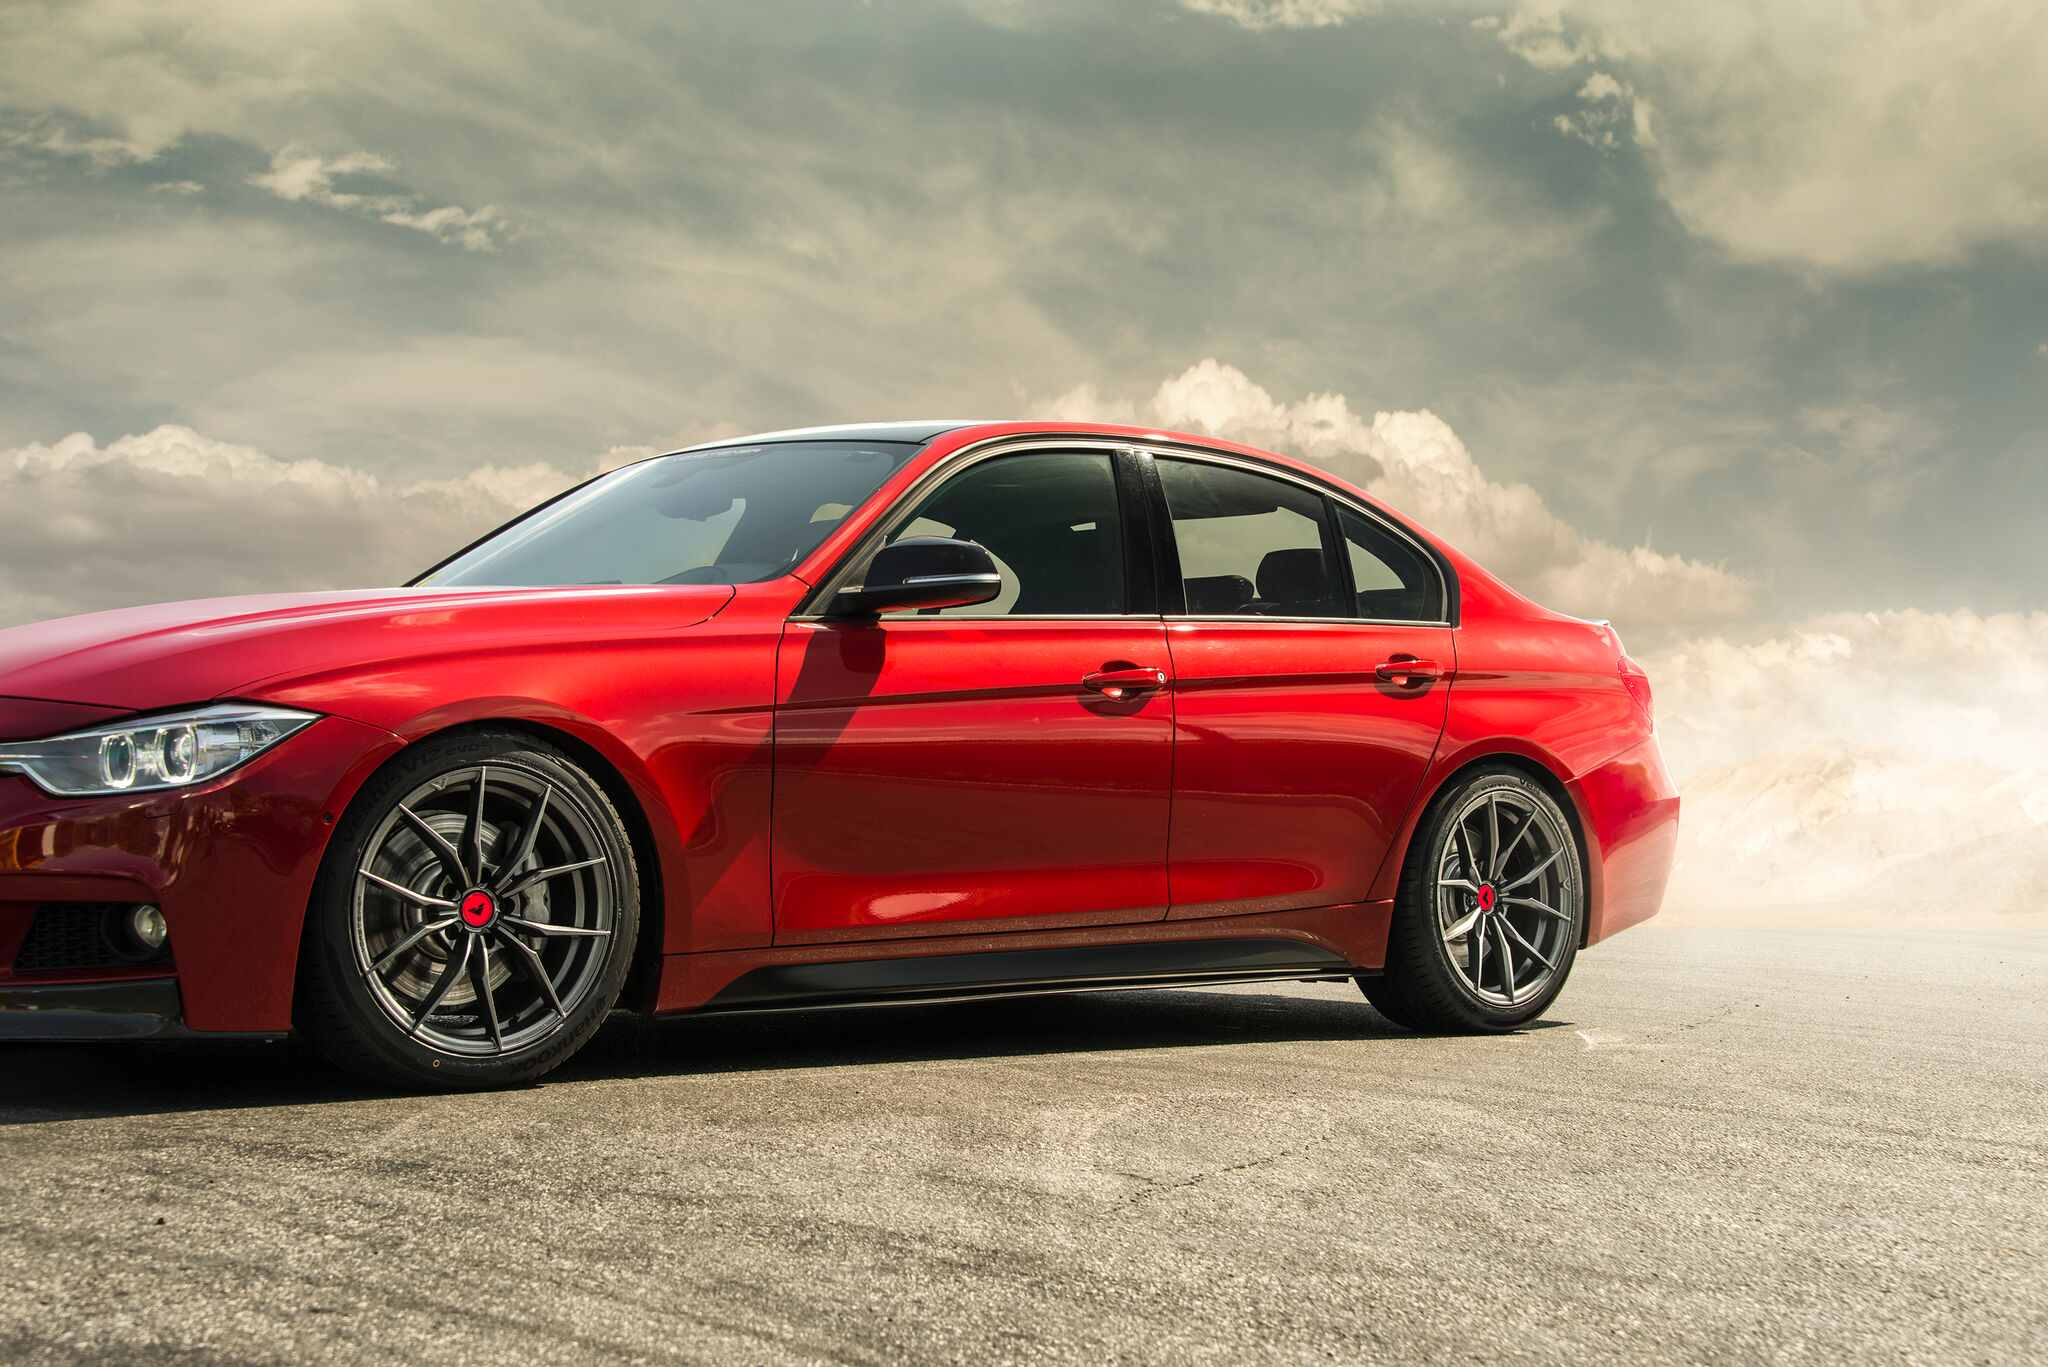 F30 Bmw 335i Looks Aggressive With The New Vorsteiner V Ff Wheels